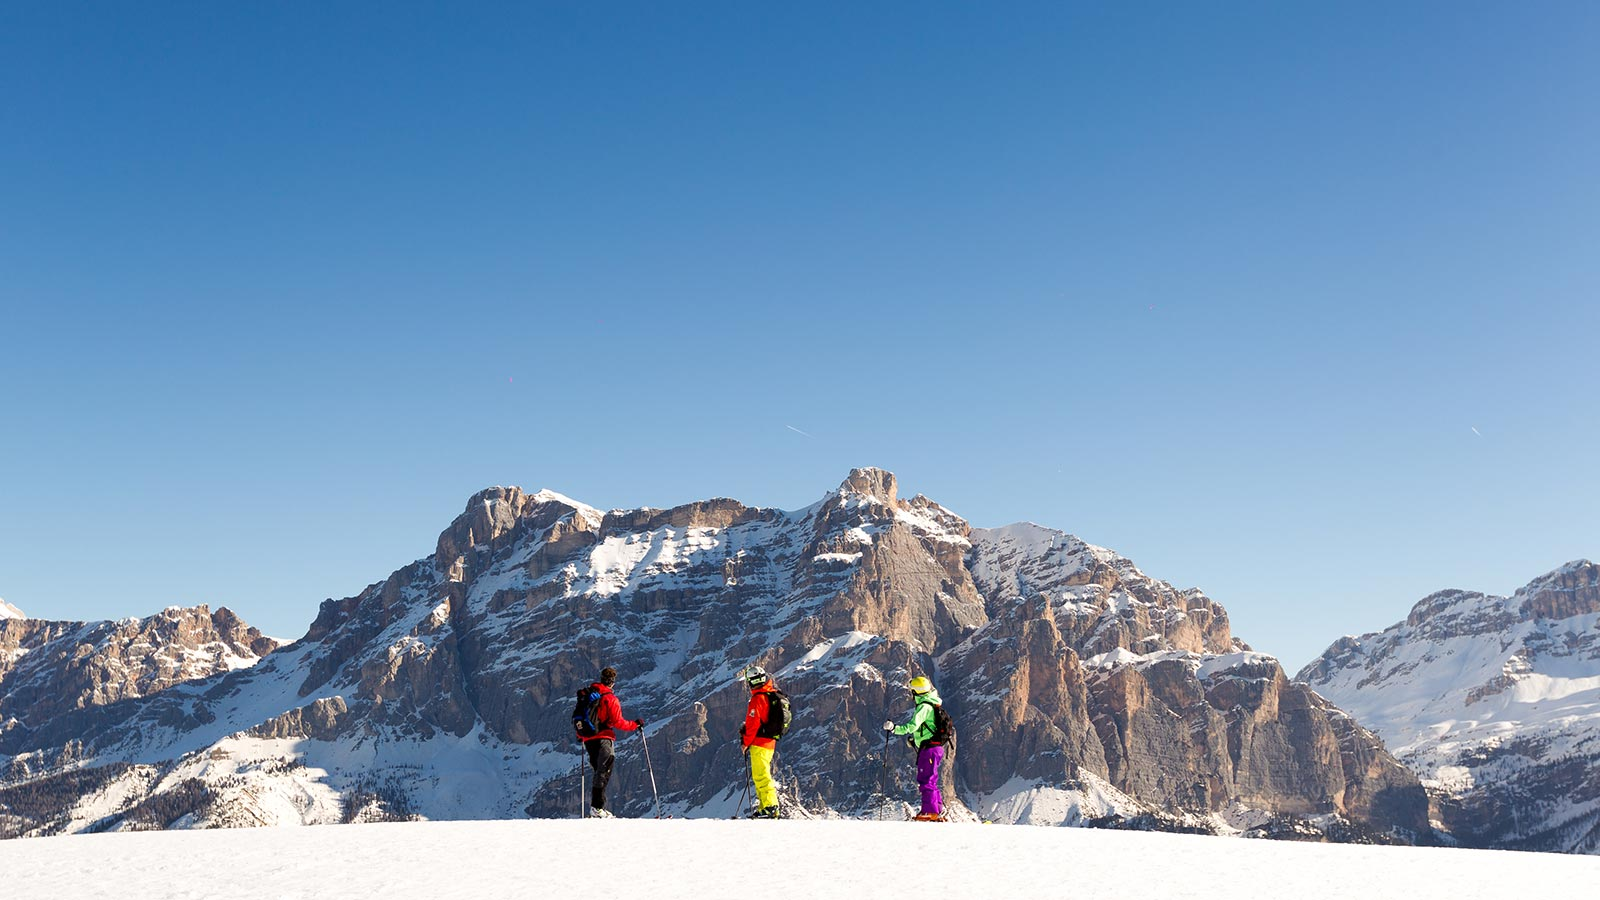 Three skiers admire the Dolomites on a sunny winter day